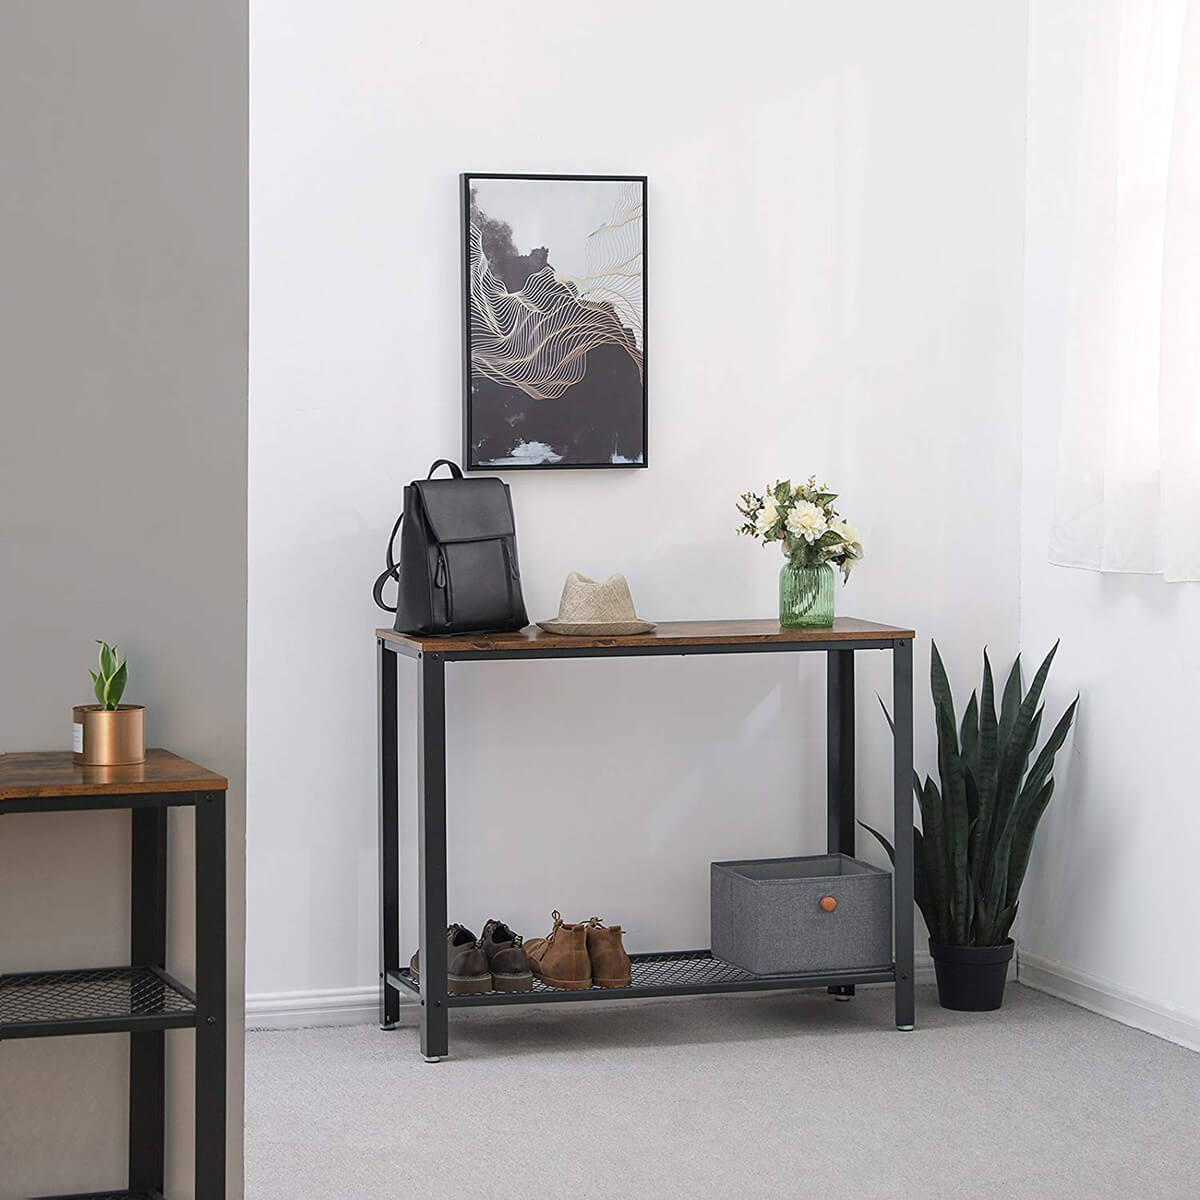 Have Industrial Elegance with this Console Table